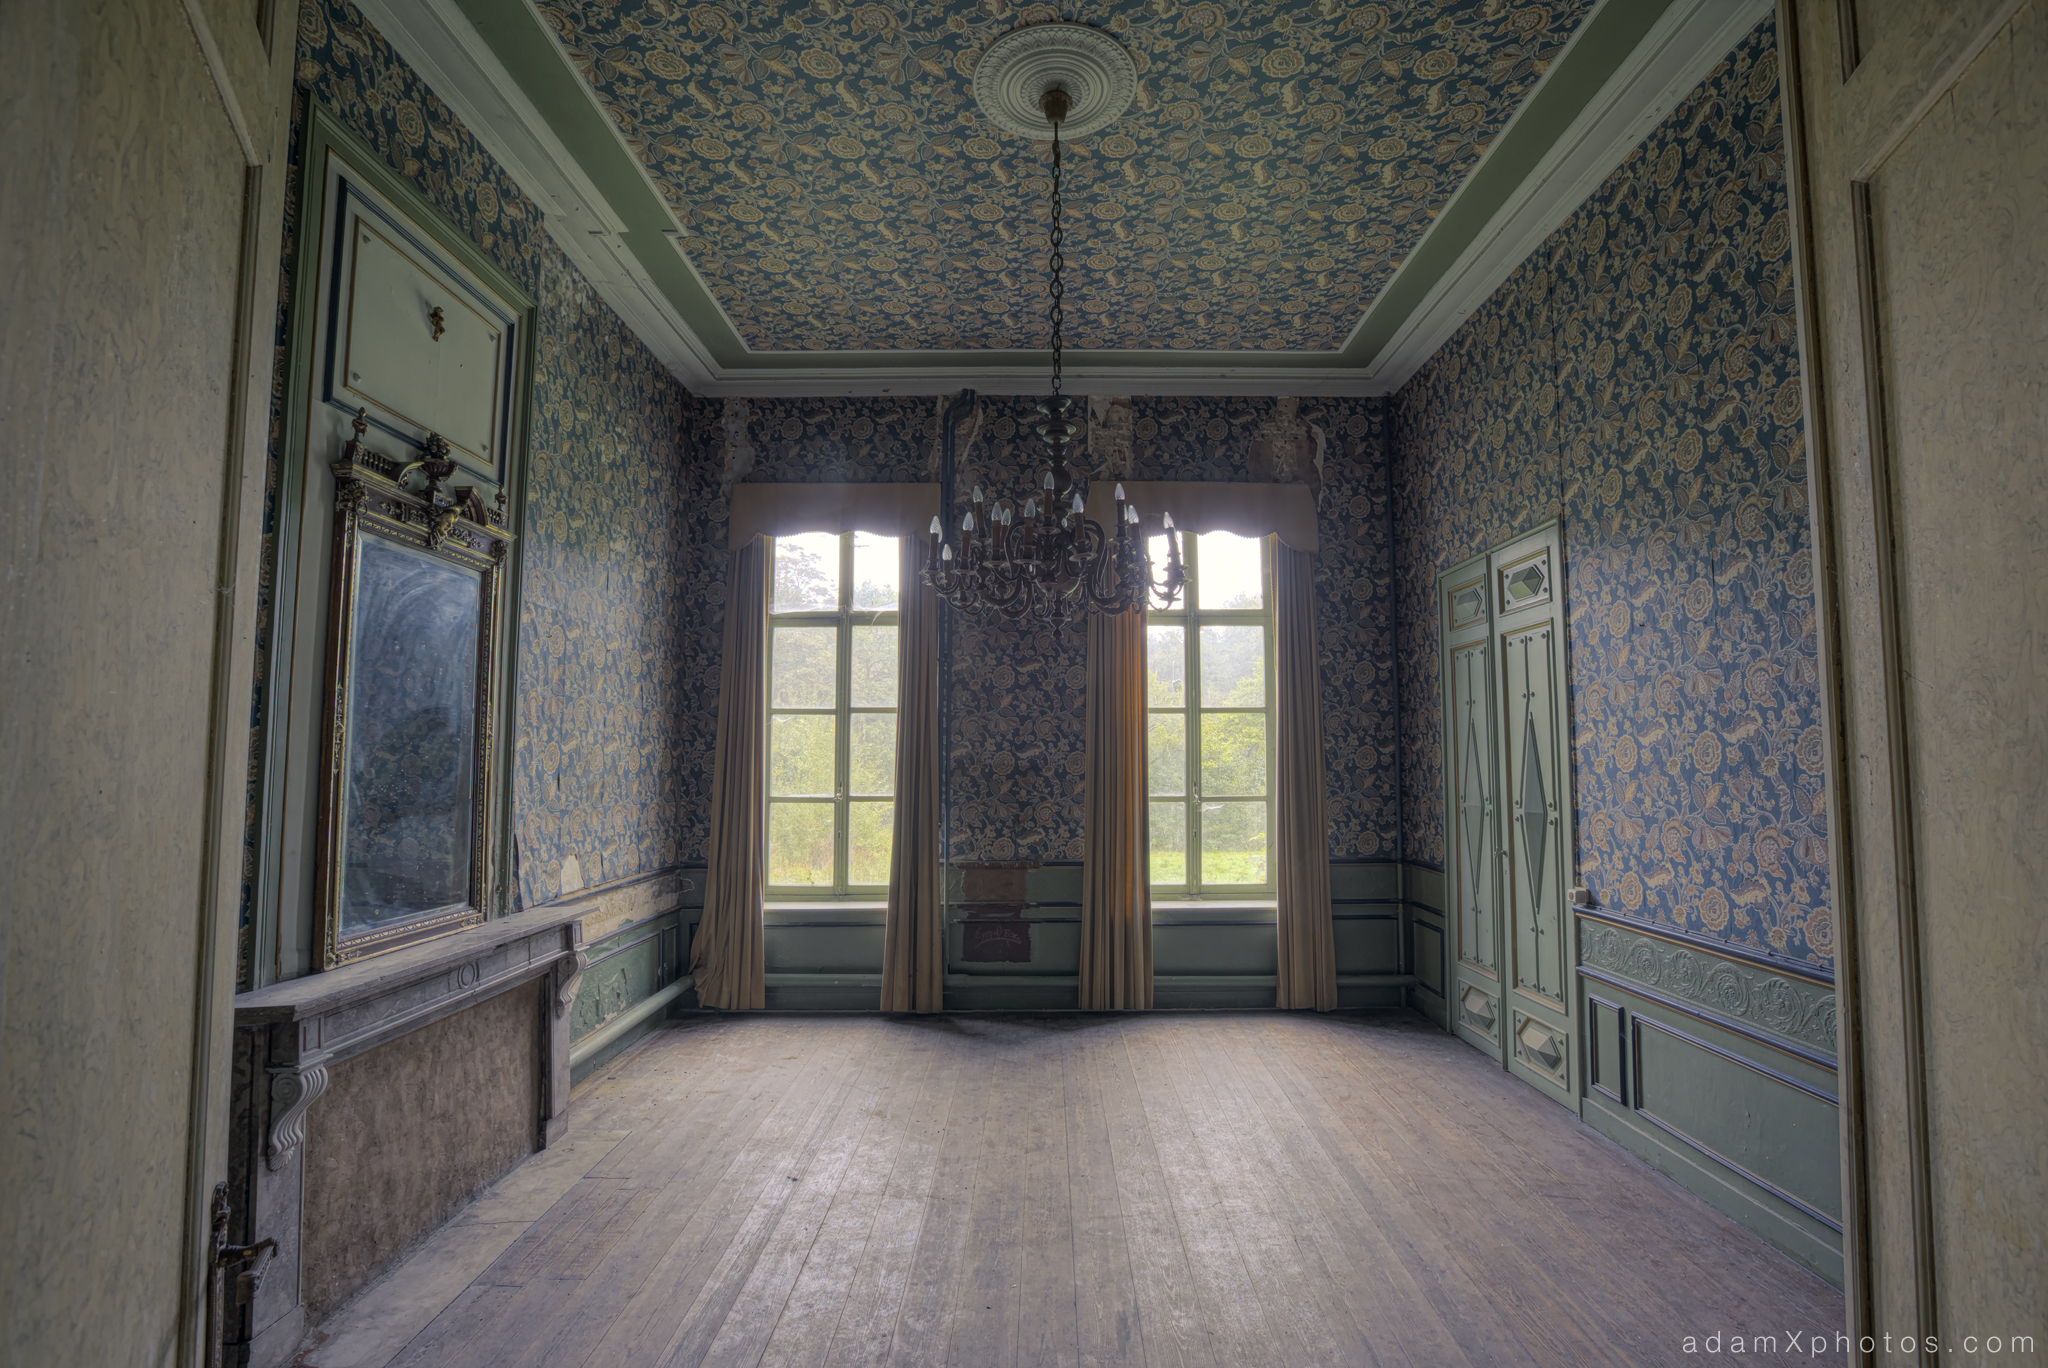 Adam X Chateau de la Chapelle urbex urban exploration belgium abandoned room mirror wallpaper grand